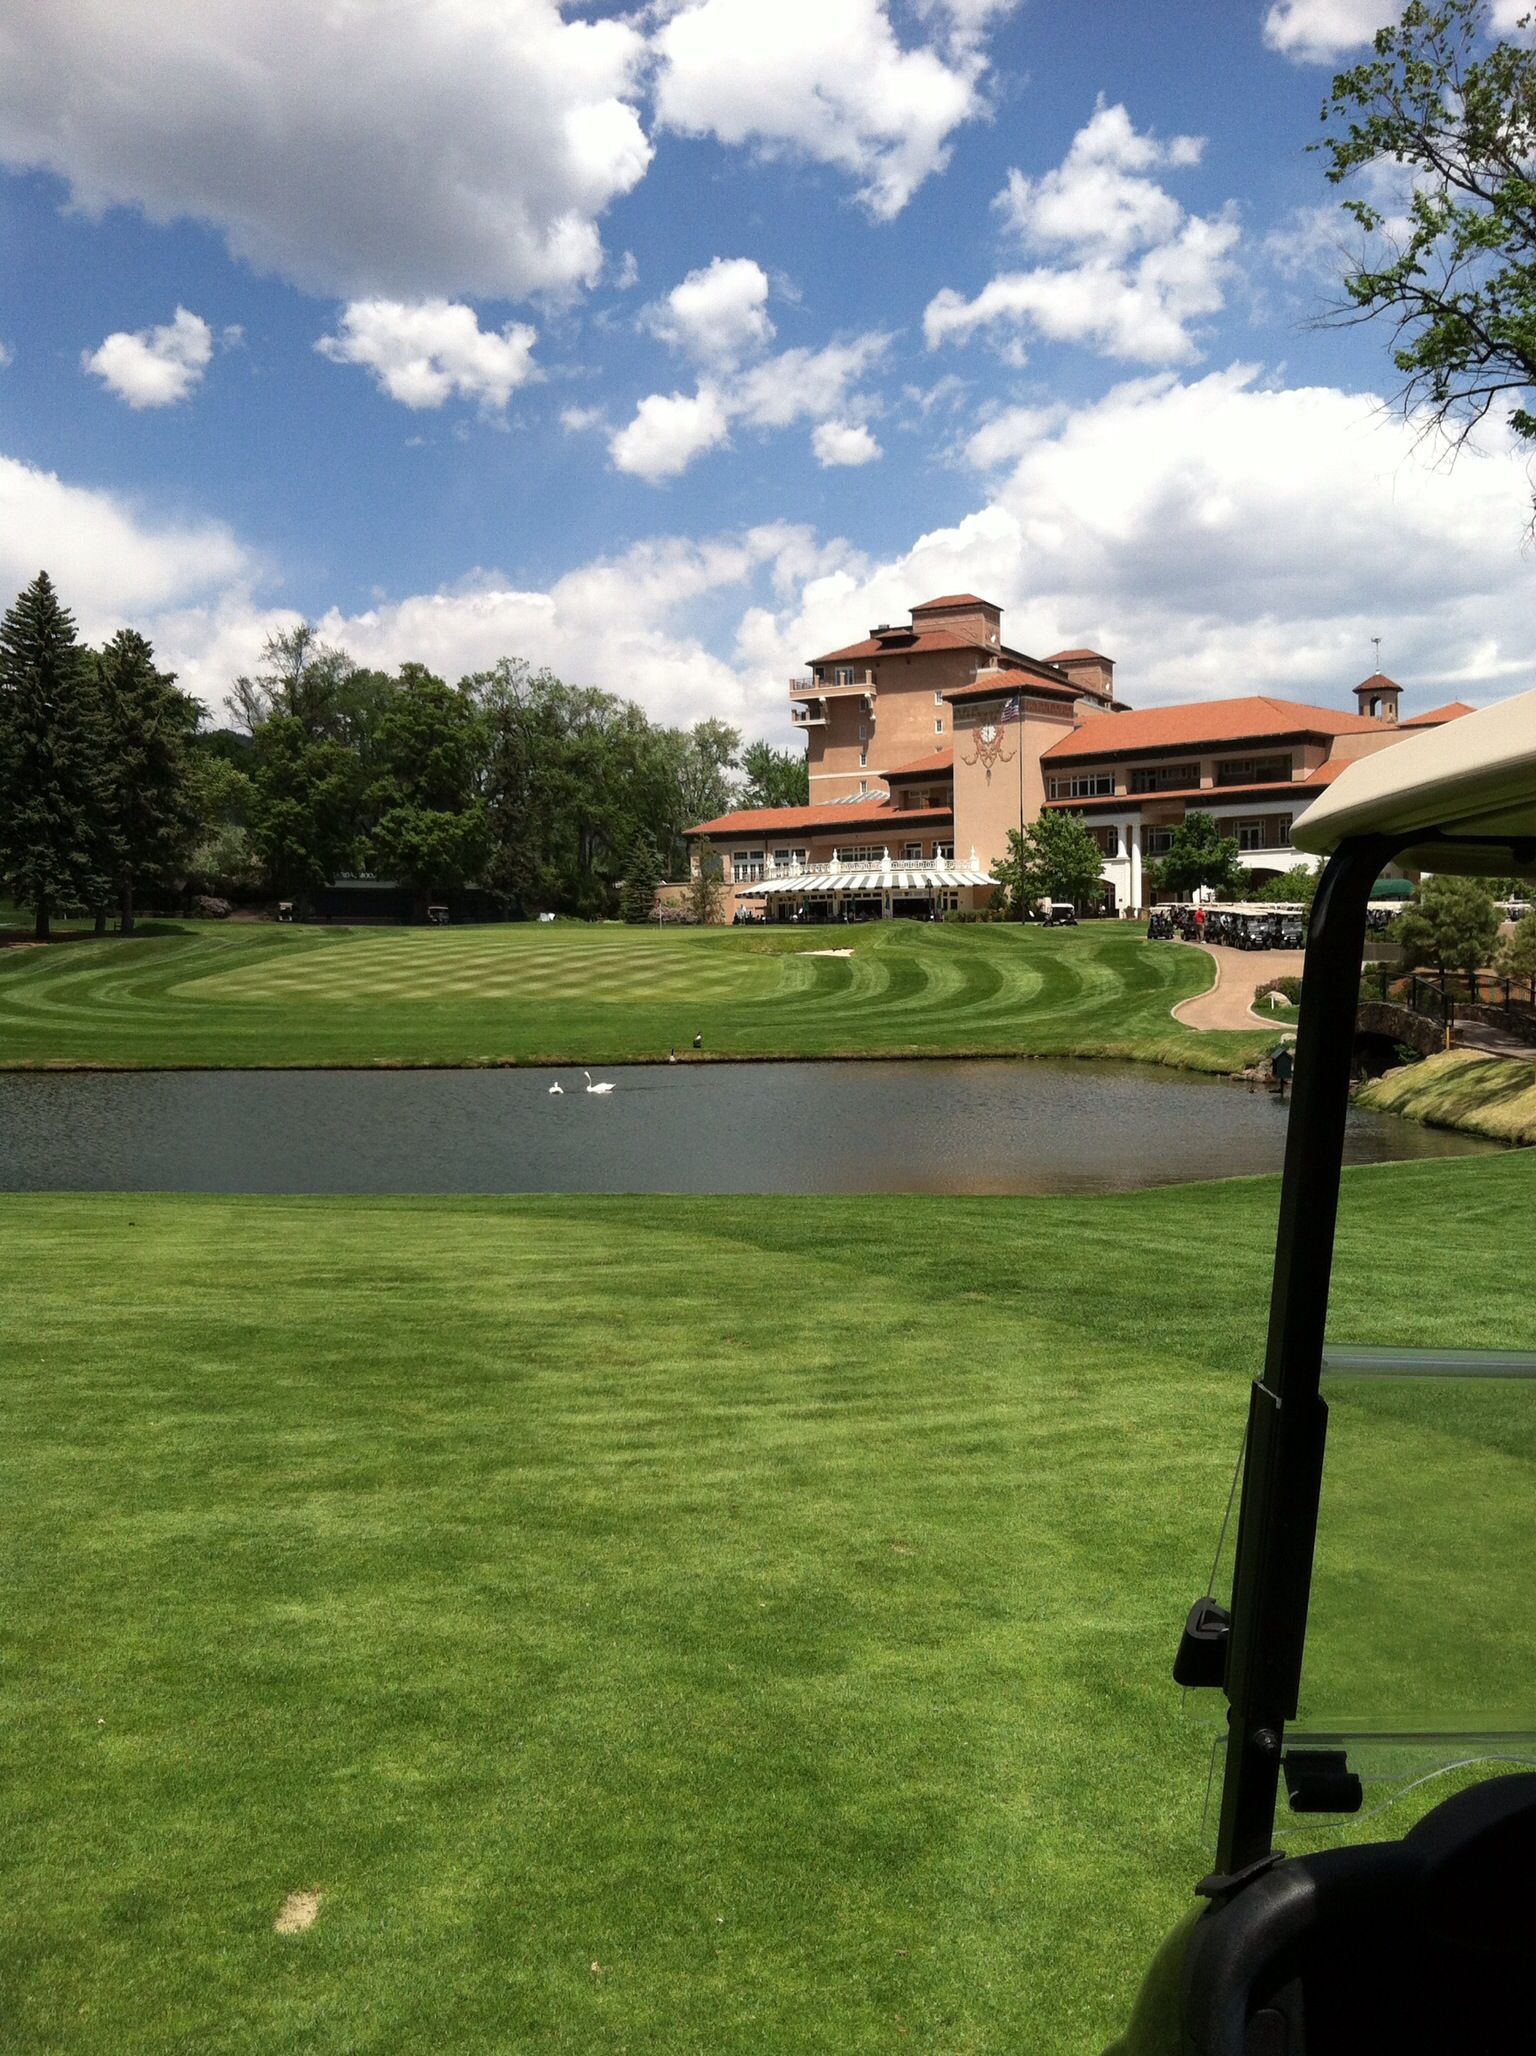 Broadmoor East Course 18th View Worked And Played Here Many Times Fantastic Property With Images Top Golf Courses Broadmoor Colorado Springs Golf Courses